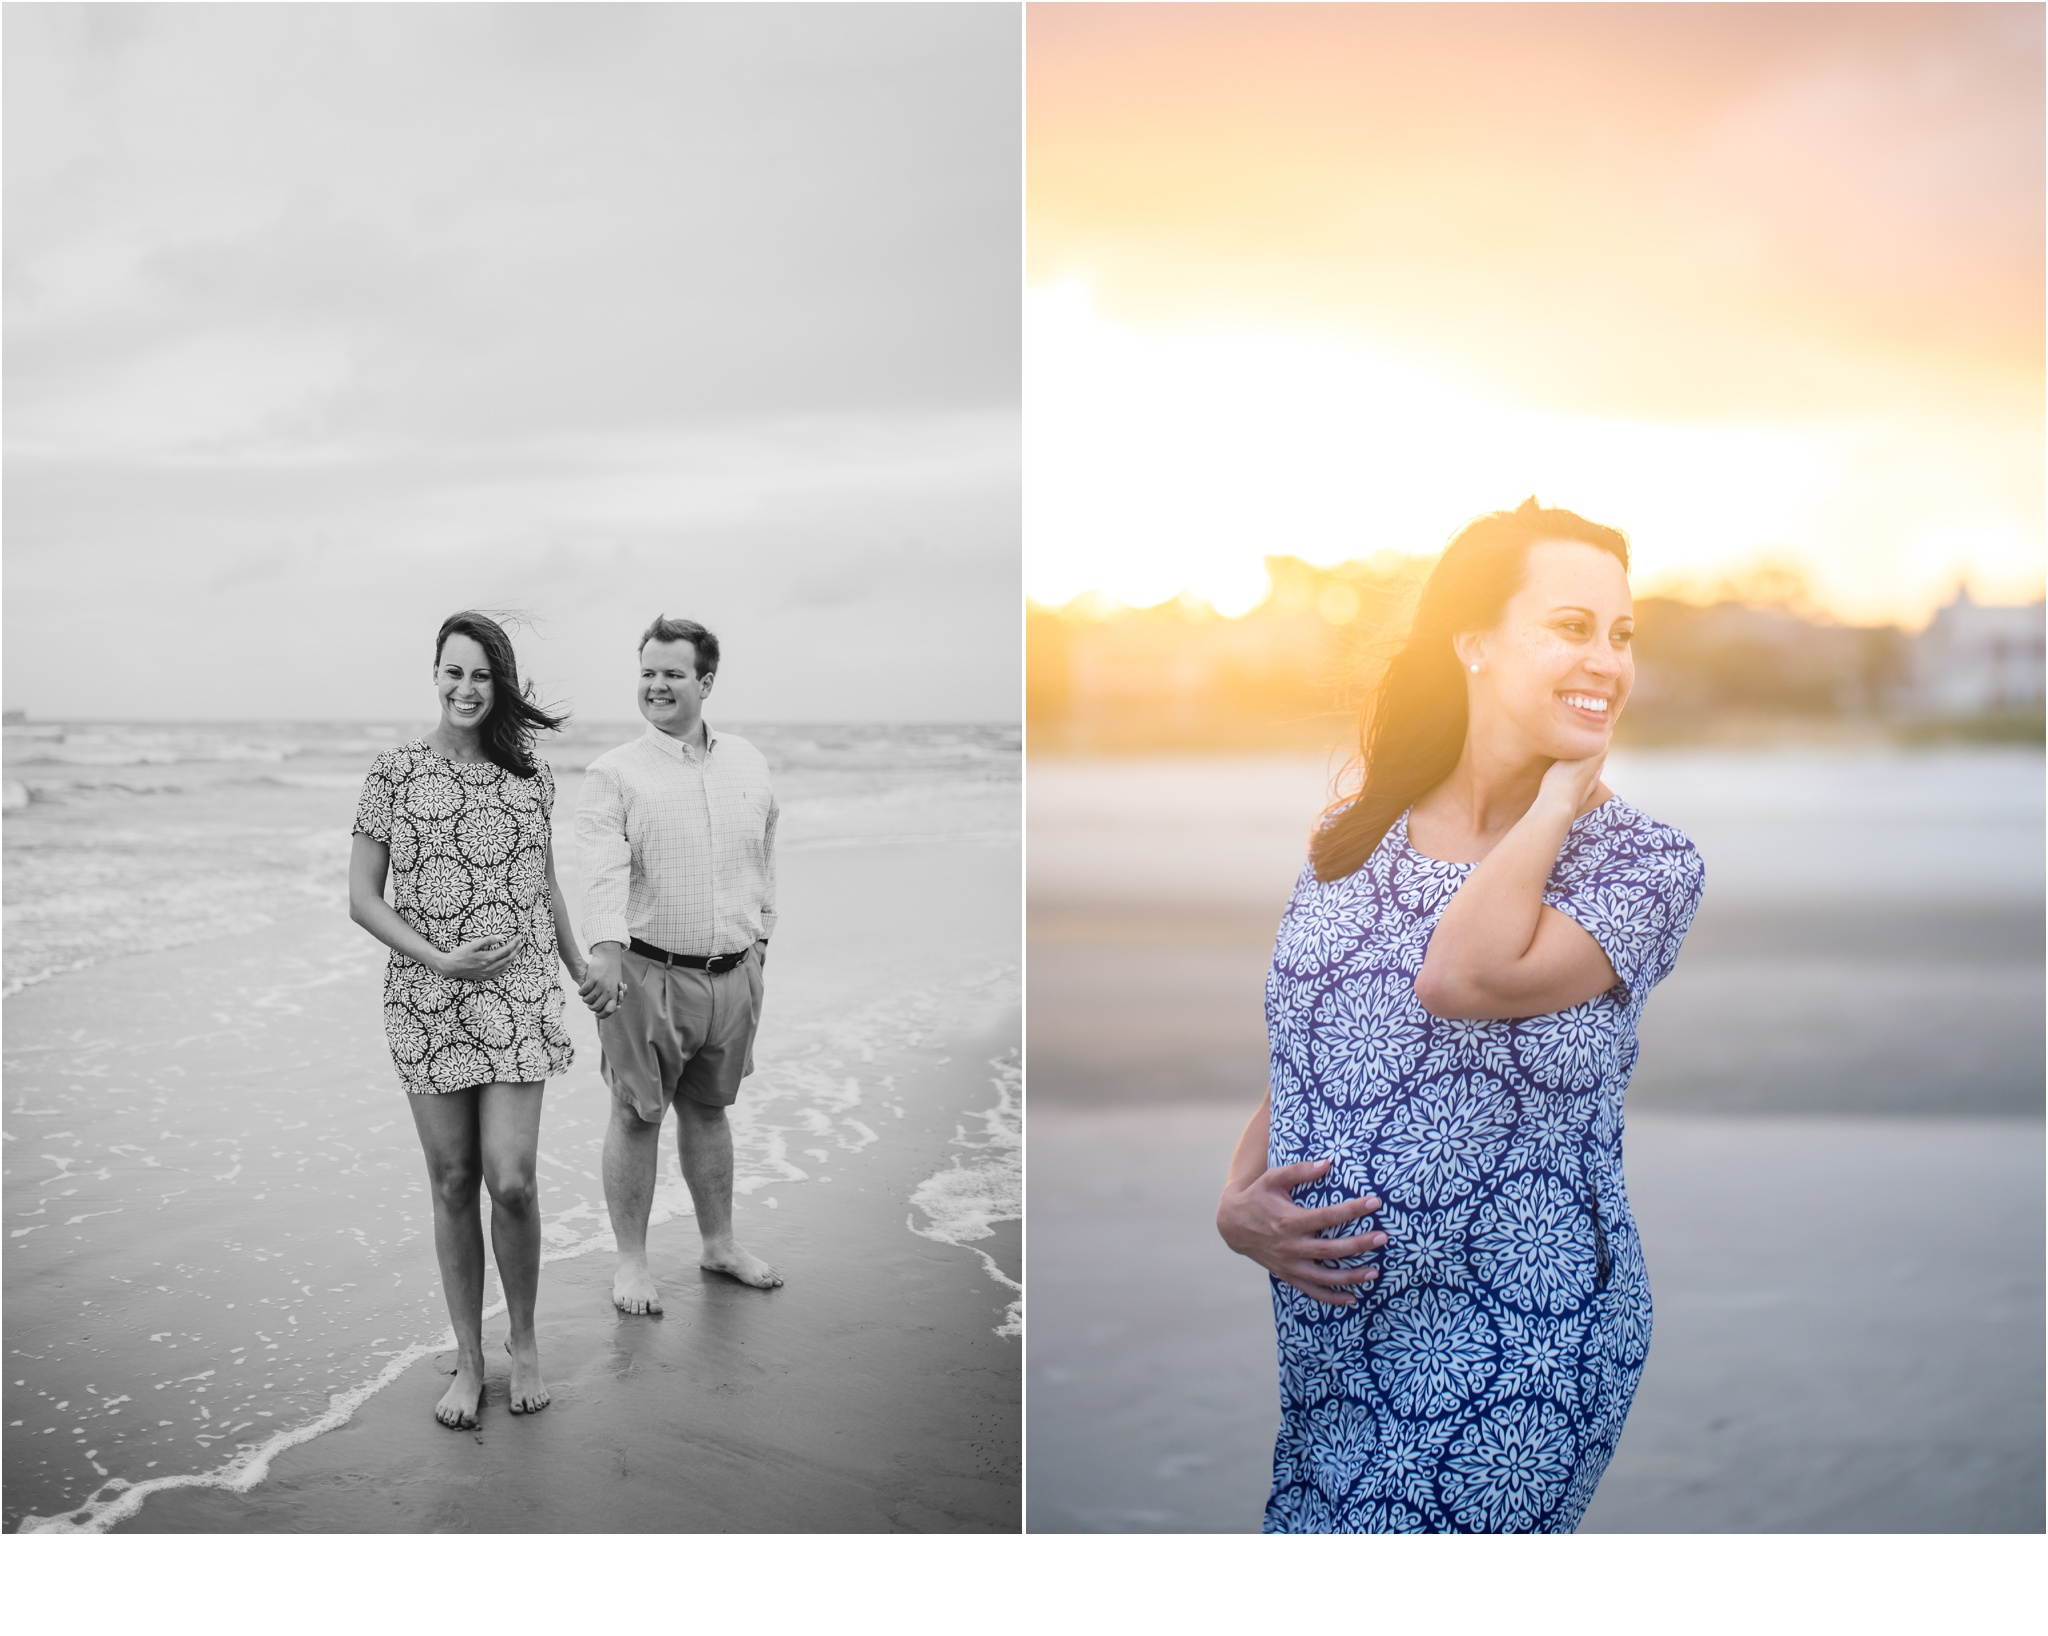 Rainey_Gregg_Photography_St._Simons_Island_Georgia_California_Wedding_Portrait_Photography_1459.jpg